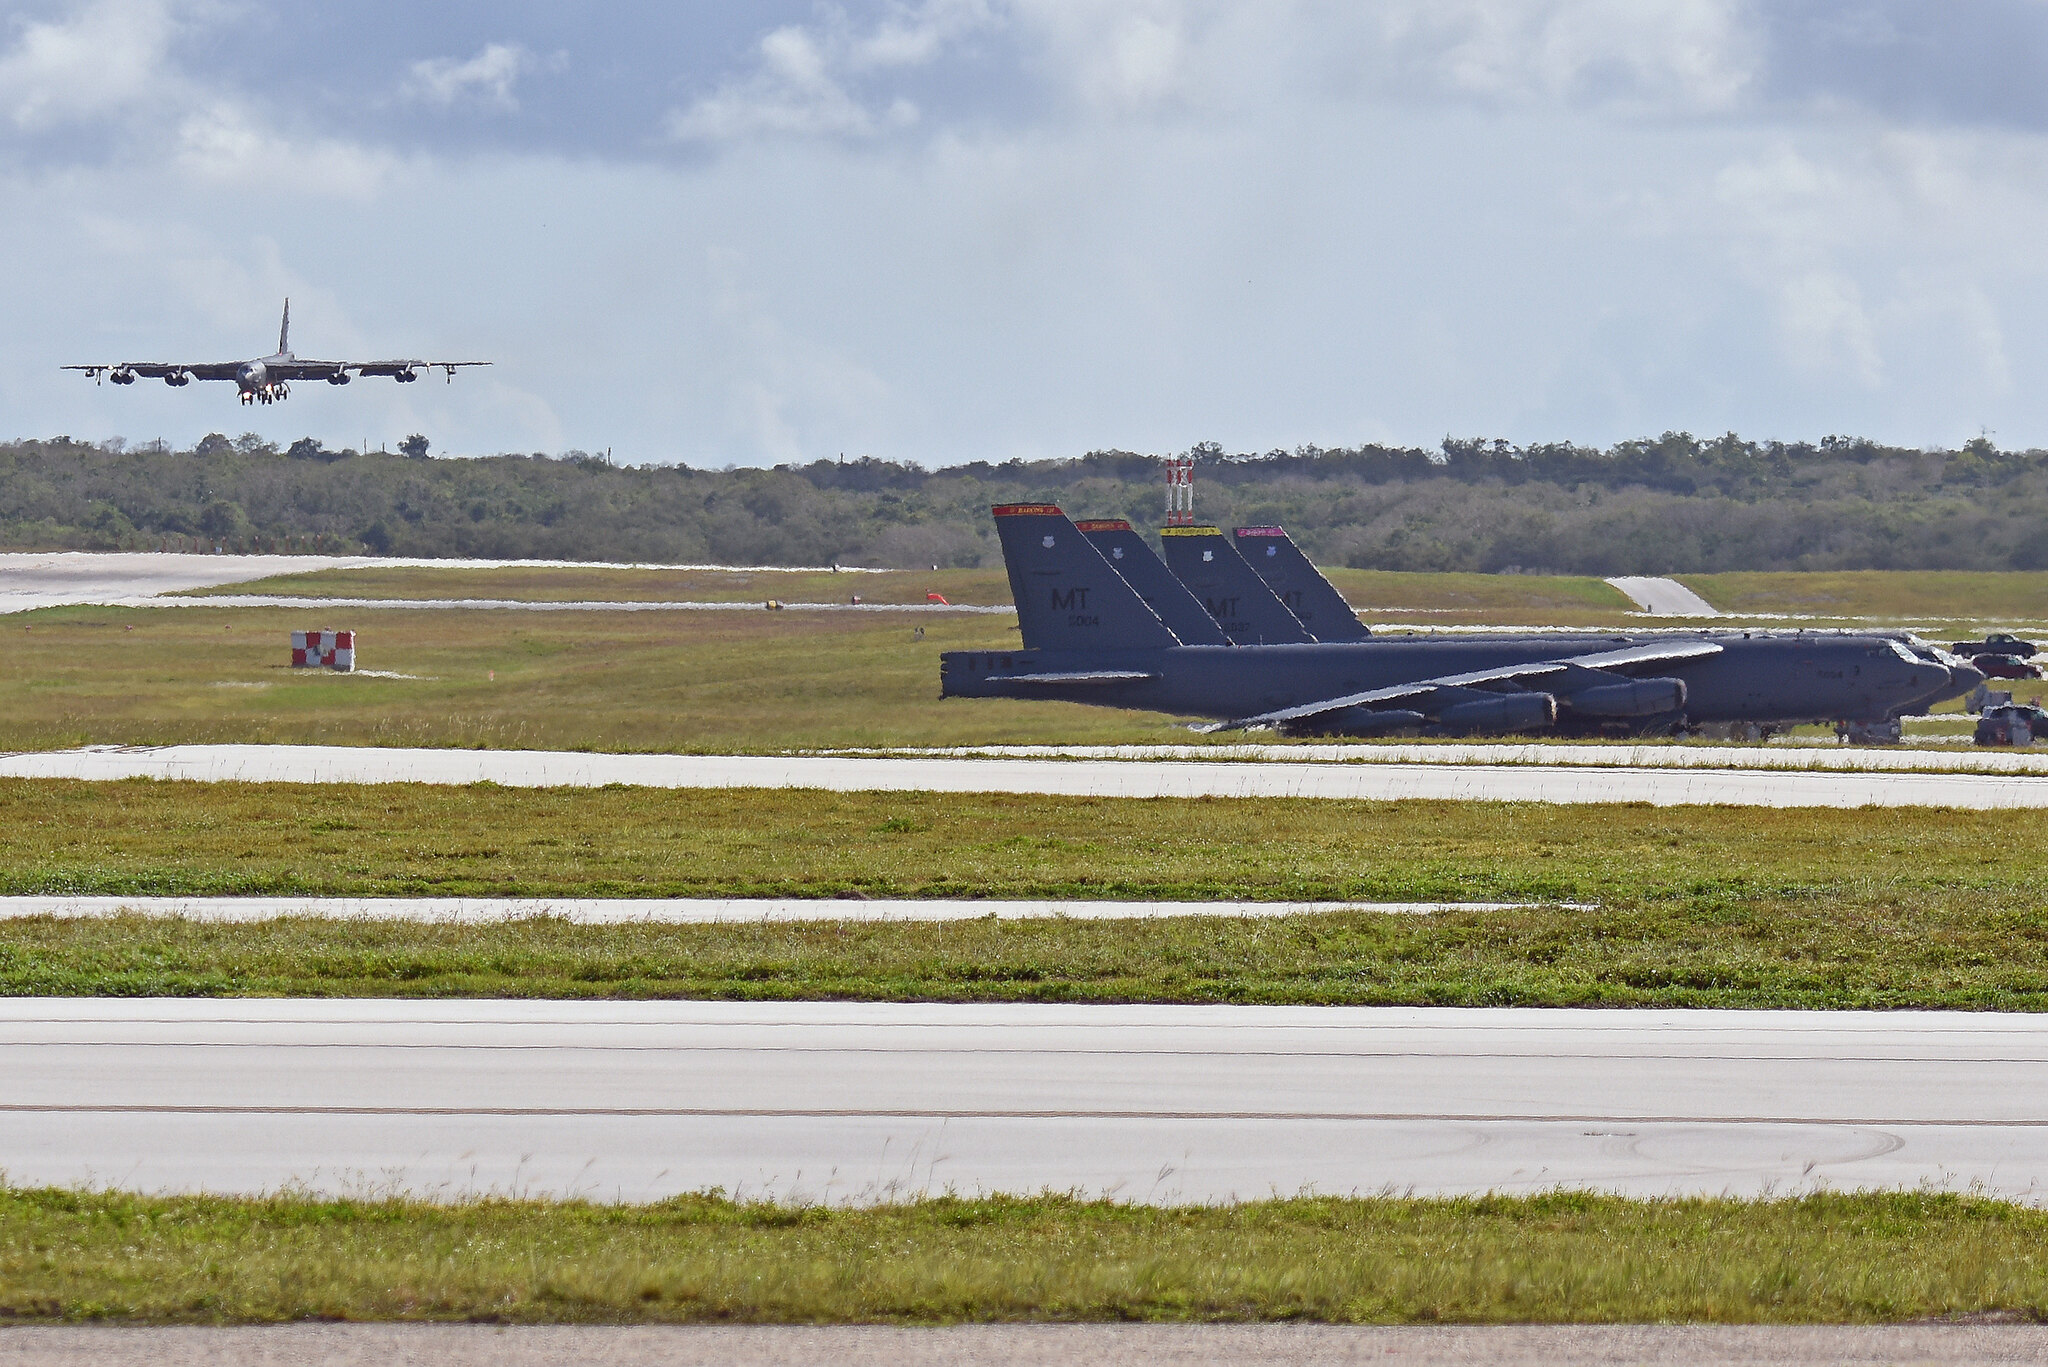 A B-52 Stratofortress deployed from Minot Air Force Base, N.D., lands July 12, 2019, at Andersen Air Force Base, Guam. (Staff Sgt. Divine Cox/Air Force)